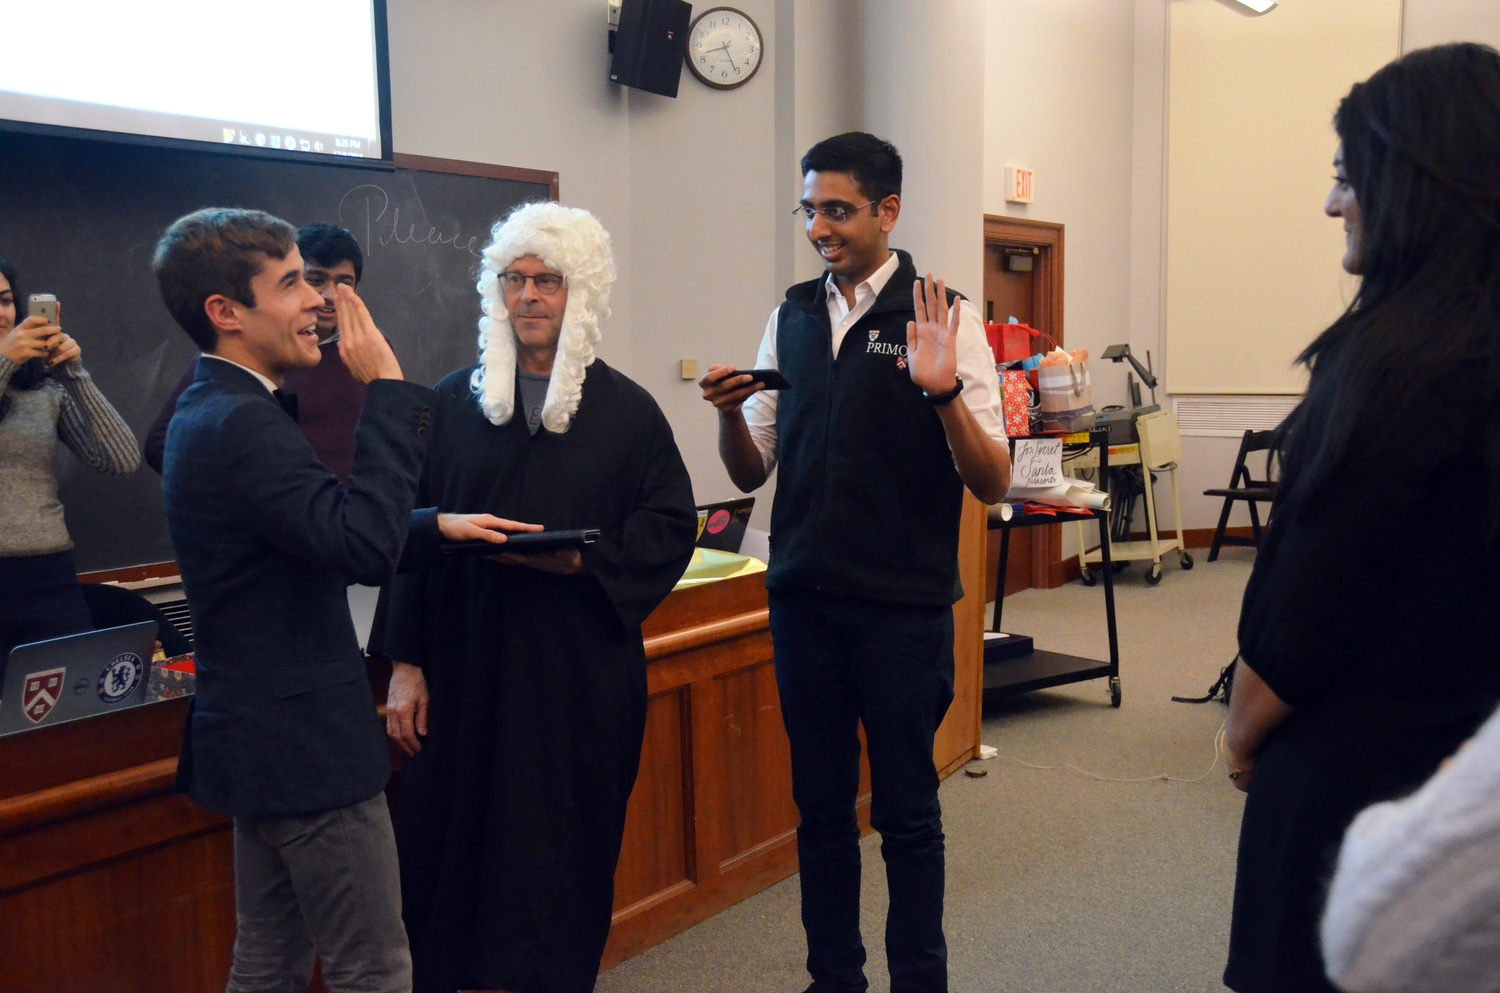 """Daniel V. """"Danny"""" Banks '17, left, recites an oath to be initiated as vice president of the Undergraduate Council on Sunday, as Dean of Student Life Stephen Lassonde and outgoing vice president Dhruv P. Goyal '16 look on."""